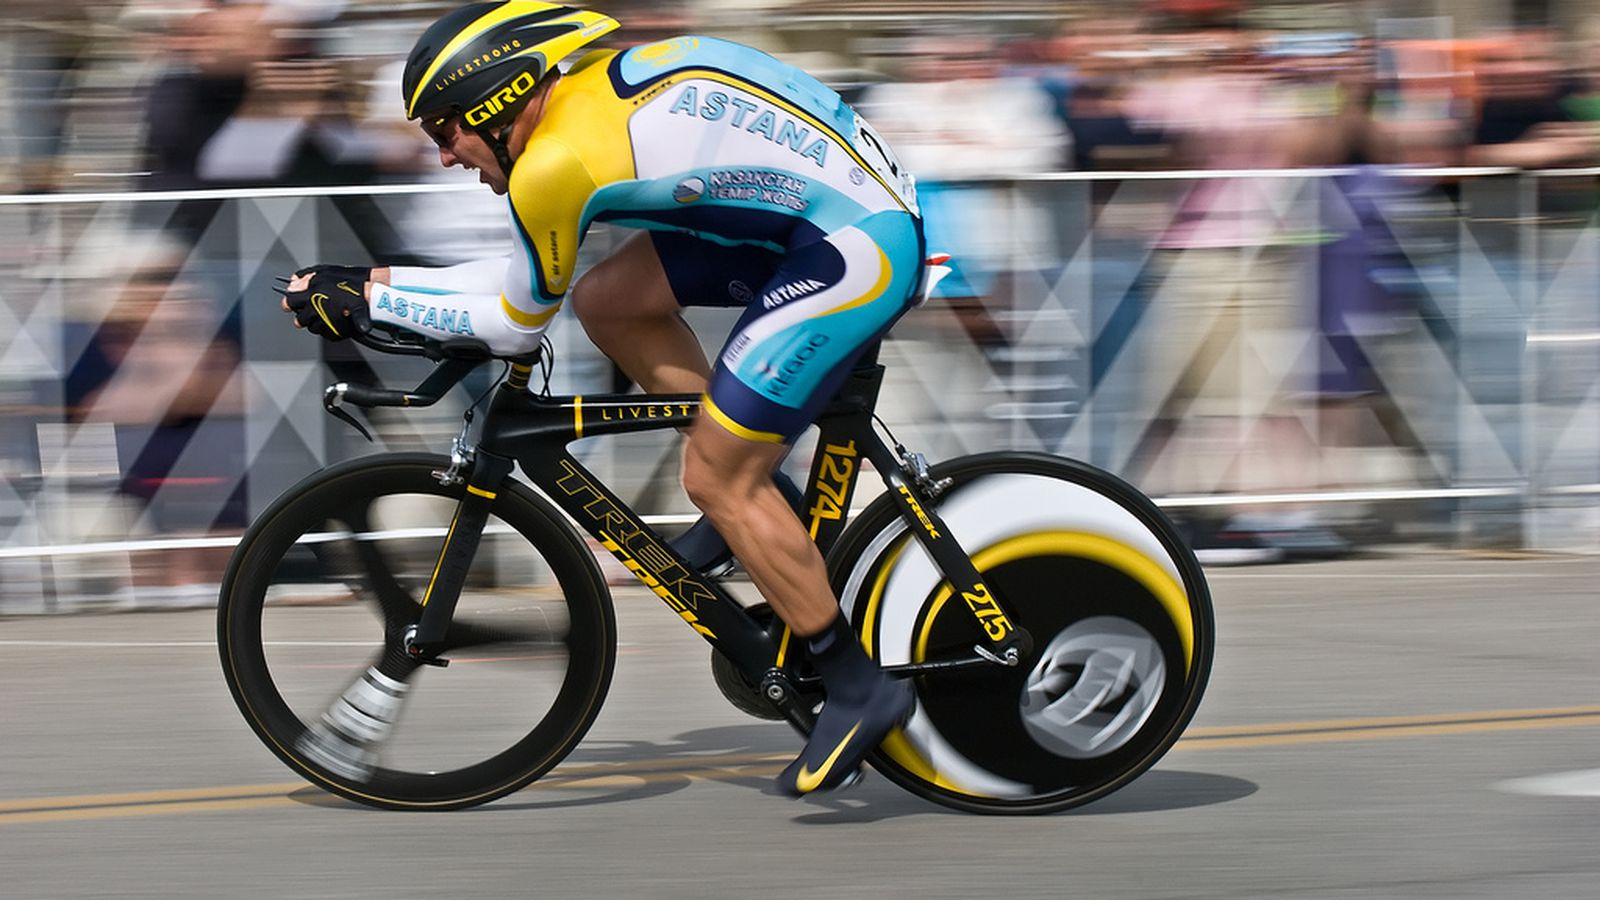 Hacking Your Body Lance Armstrong And The Science Of